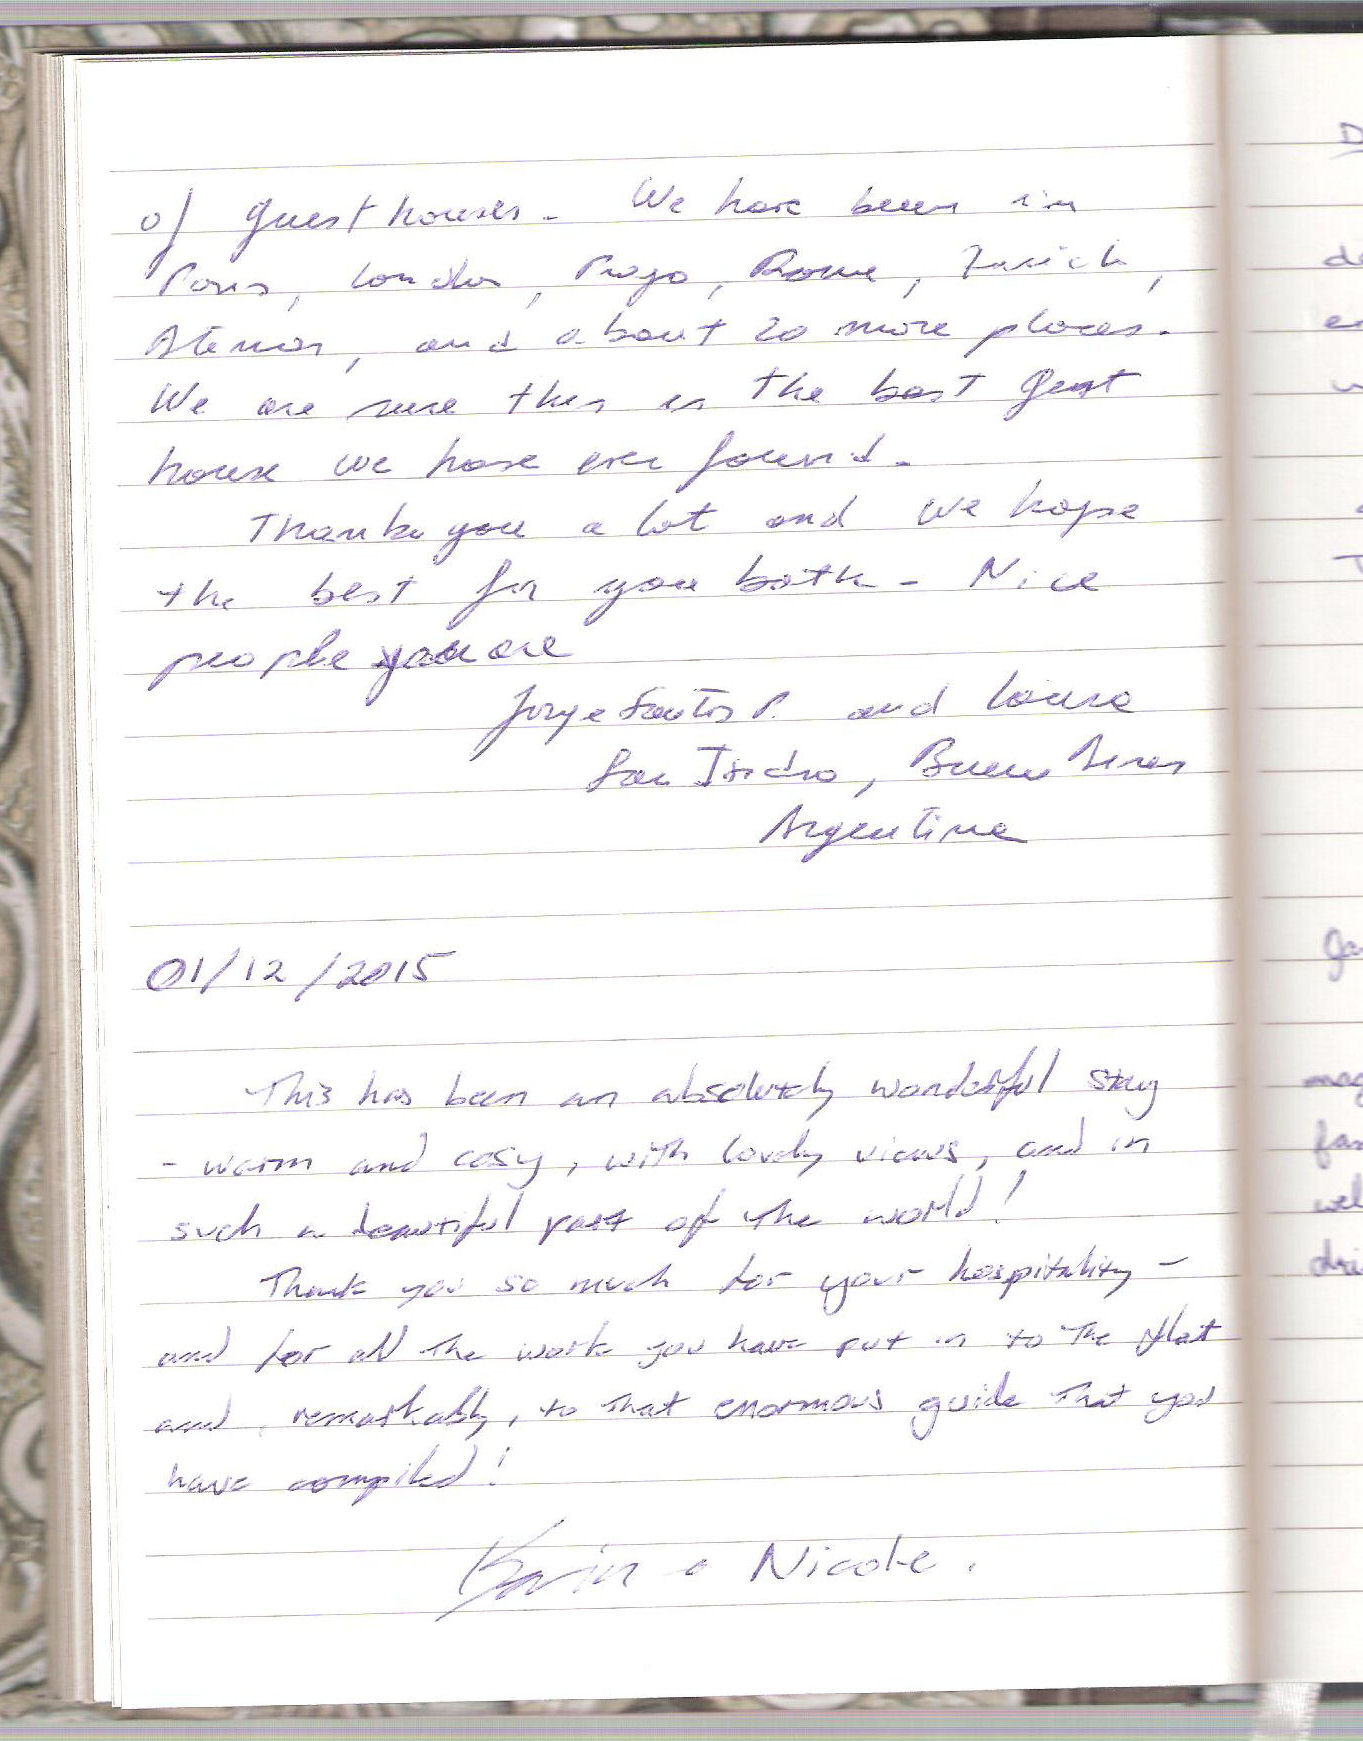 guestbook-page-036